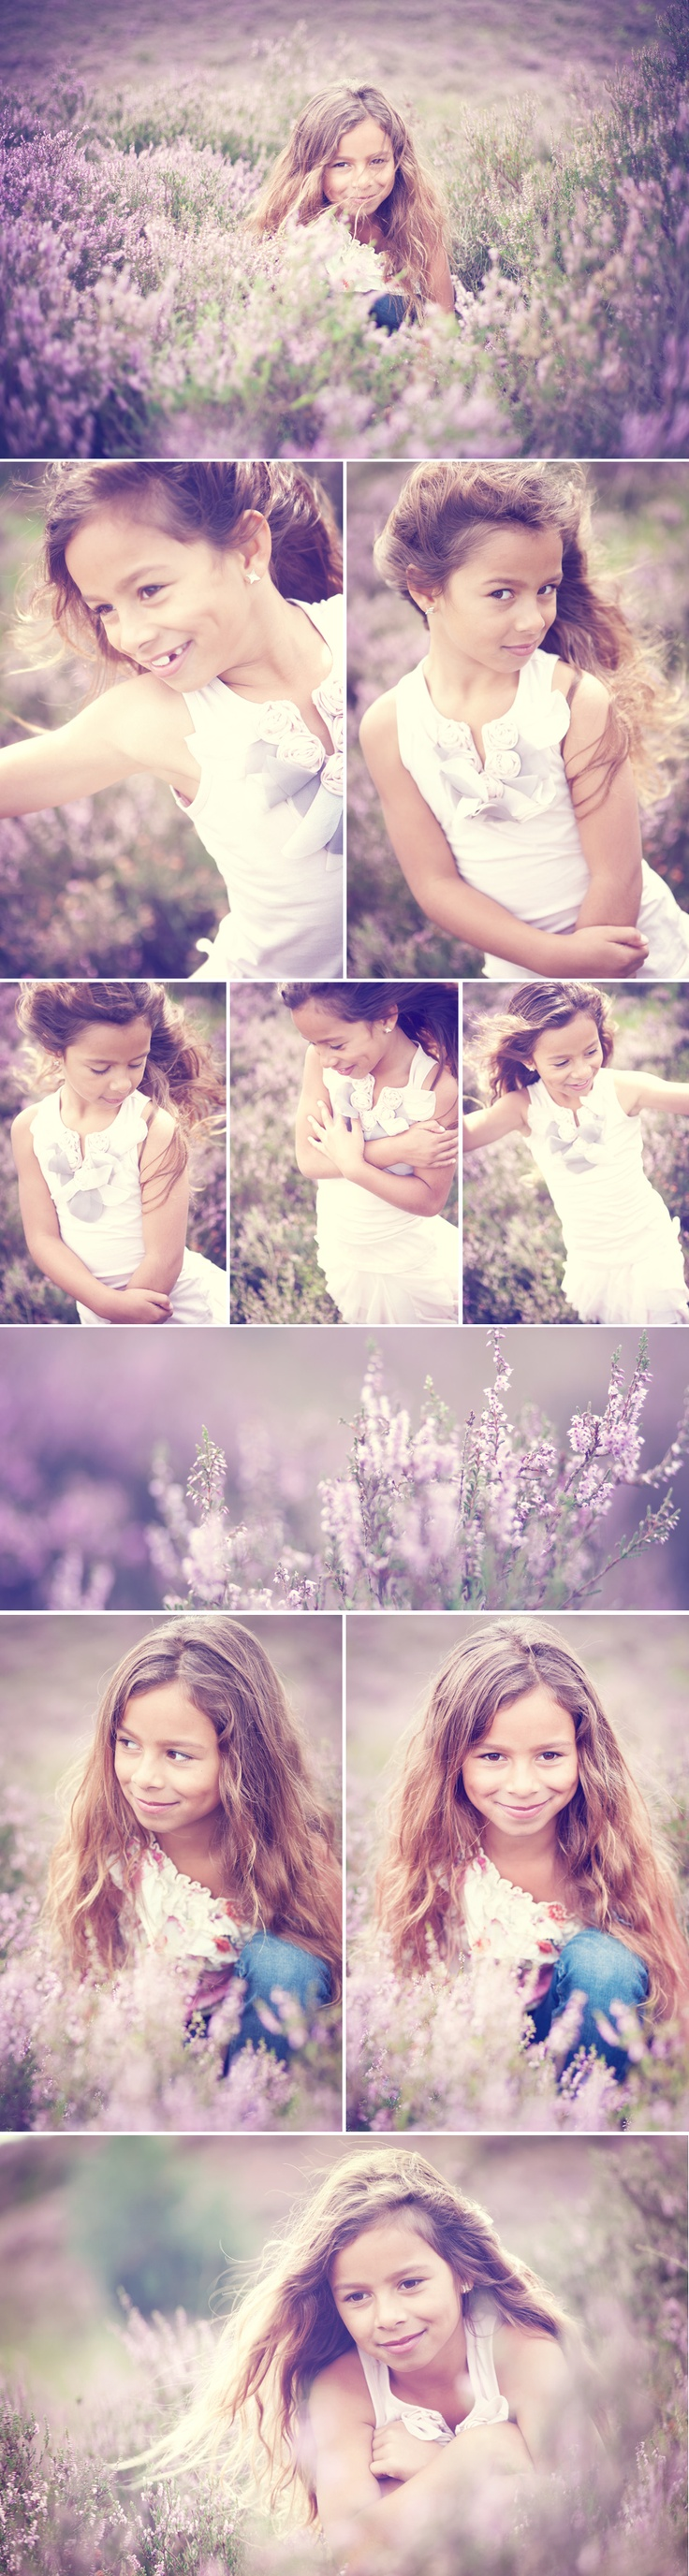 Cute girl, natural light, love these pictures! #photography #lavender #lavendel